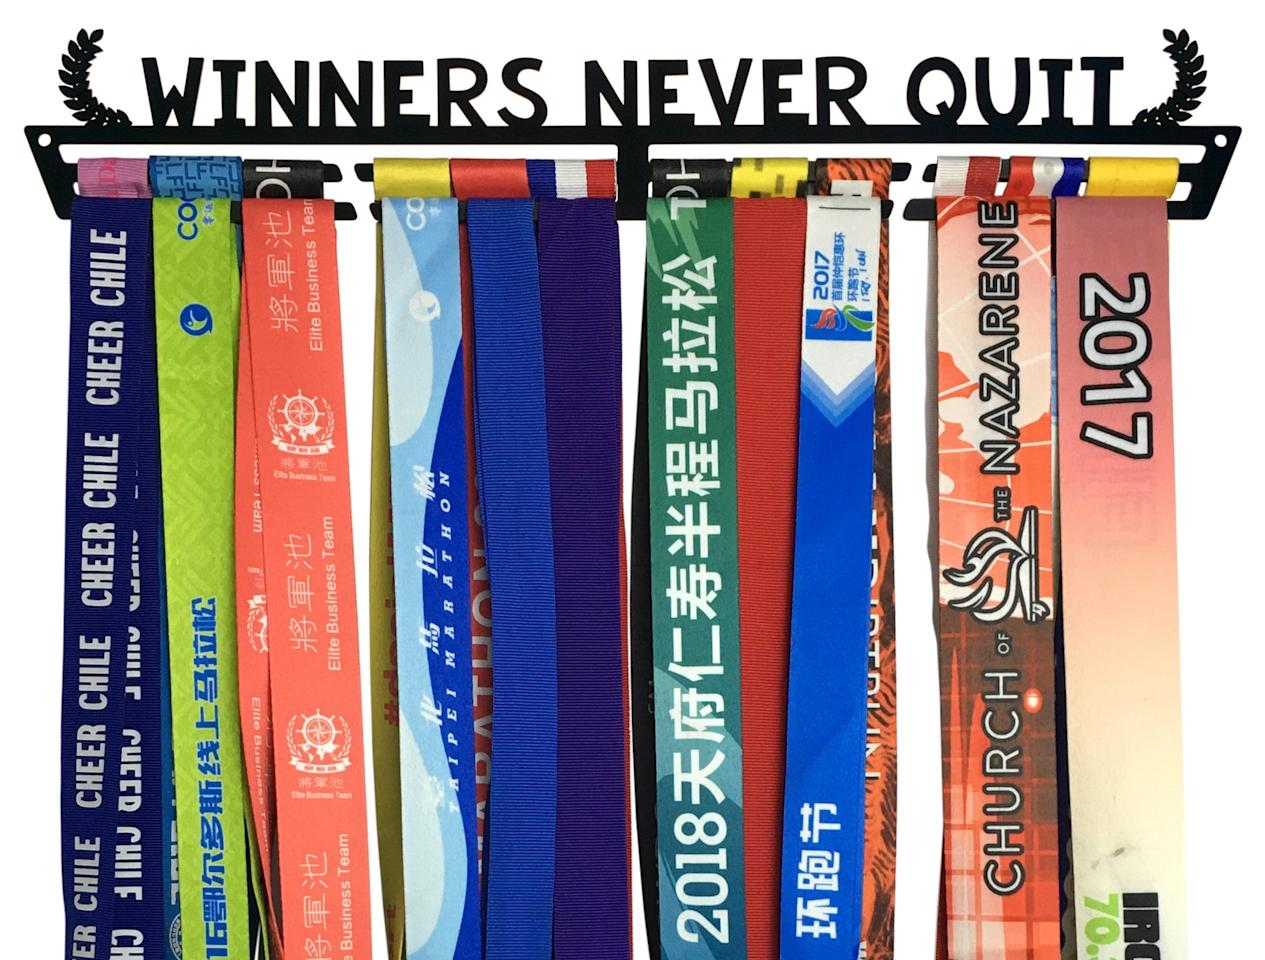 """<p>This <a href=""""https://www.popsugar.com/buy/Crownwyard-Winners-Never-Quit-Medal-Display-Rack-511925?p_name=Crownwyard%20Winners%20Never%20Quit%20Medal%20Display%20Rack&retailer=amazon.com&pid=511925&price=30&evar1=fit%3Aus&evar9=46802629&evar98=https%3A%2F%2Fwww.popsugar.com%2Fphoto-gallery%2F46802629%2Fimage%2F46853705%2FCrownwyard-Winners-Never-Quit-Medal-Display-Rack&prop13=api&pdata=1"""" rel=""""nofollow"""" data-shoppable-link=""""1"""" target=""""_blank"""" class=""""ga-track"""" data-ga-category=""""Related"""" data-ga-label=""""https://www.amazon.com/Crownyard-Medal-Holder-Triathlon-Gymnastics/dp/B0796VH9F8/ref=sr_1_44?crid=2O2F1LQUA8VRQ&amp;dchild=1&amp;keywords=medal+hangers+for+runners&amp;qid=1572973910&amp;sprefix=medal+hanger%2Caps%2C183&amp;sr=8-44"""" data-ga-action=""""In-Line Links"""">Crownwyard Winners Never Quit Medal Display Rack</a> ($30) could work just as well for other sports, but it embodies the spirit of long-distance runners.</p>"""